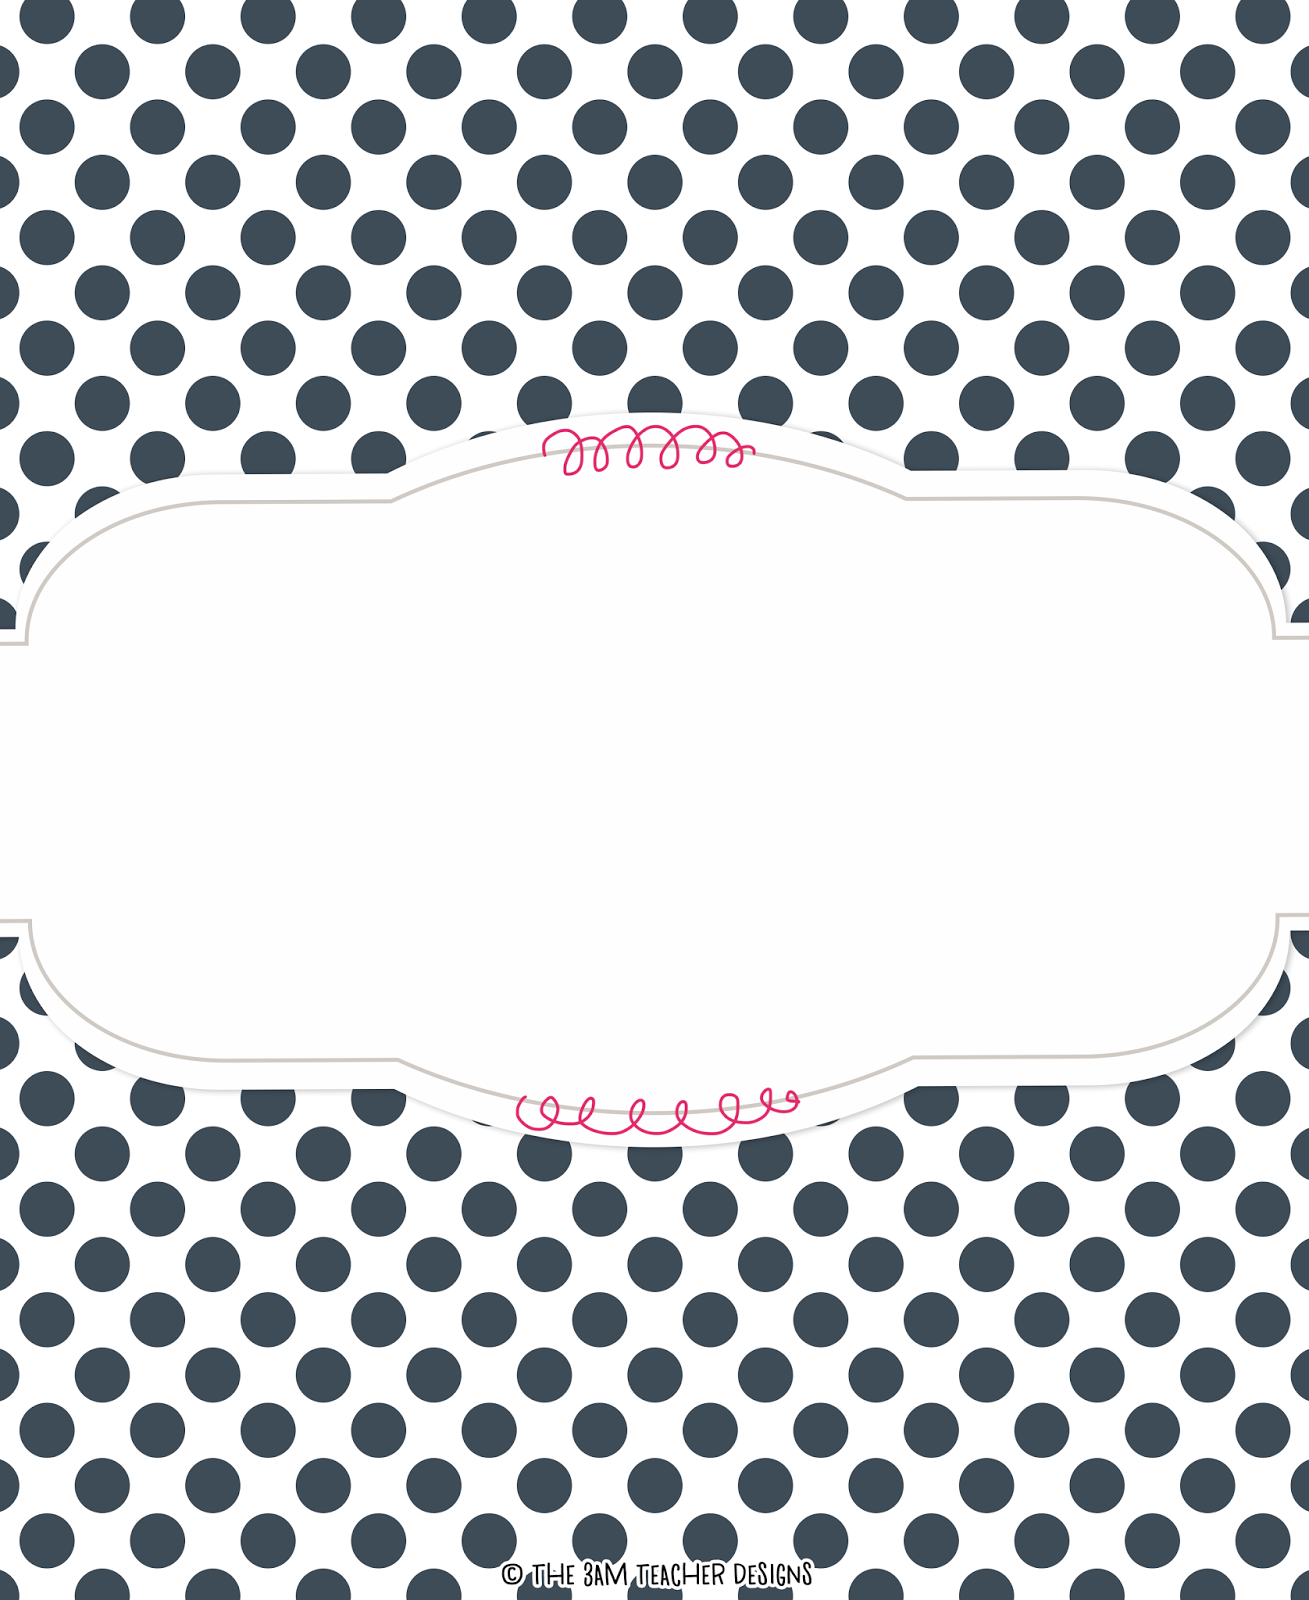 FREE Polka-Dot Binder Cover Graphic By The 3AM Teacher